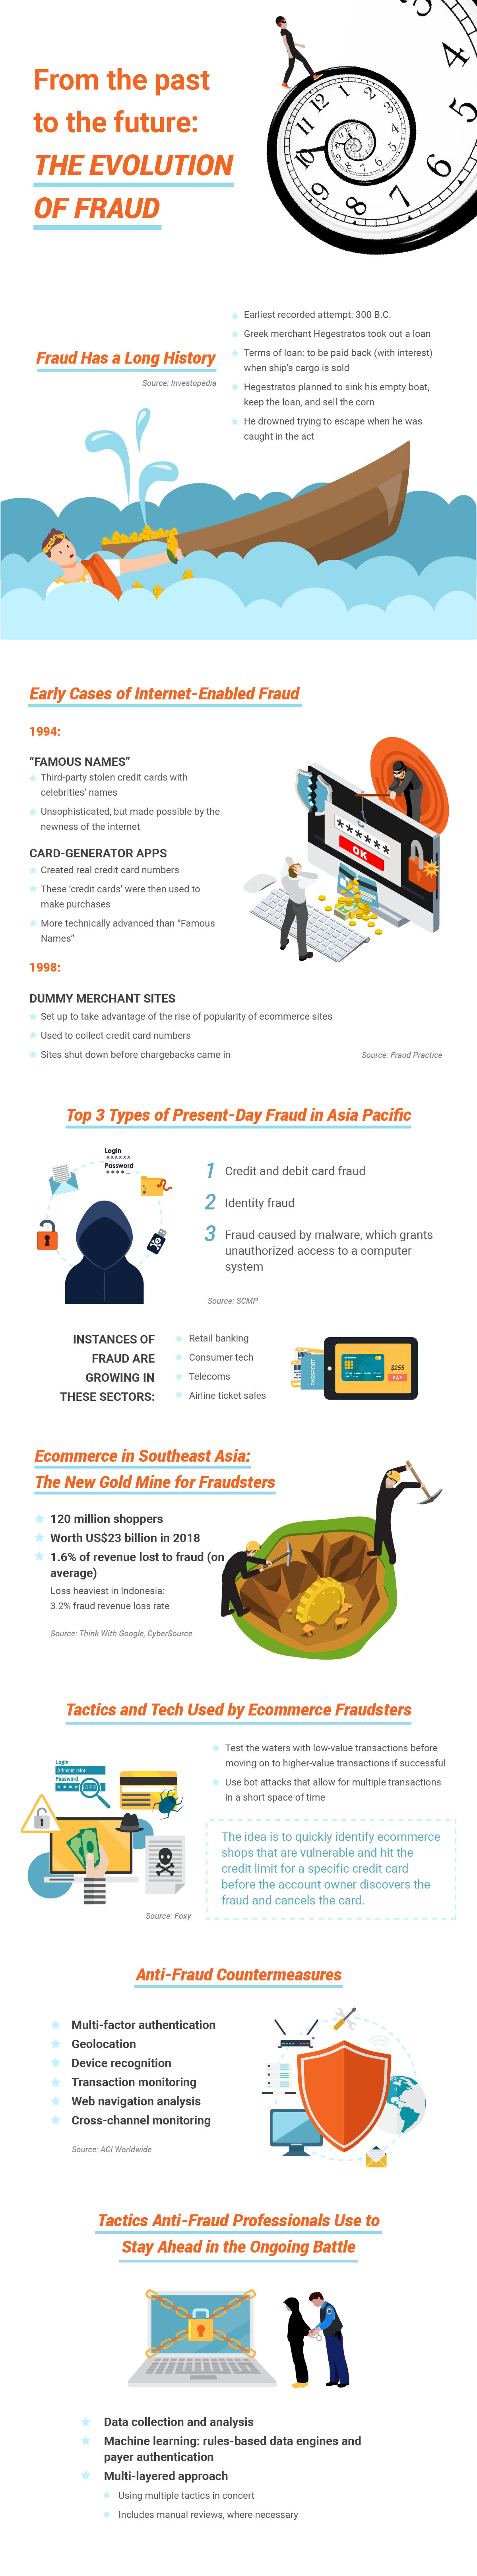 From the past to the future: The evolution of fraud